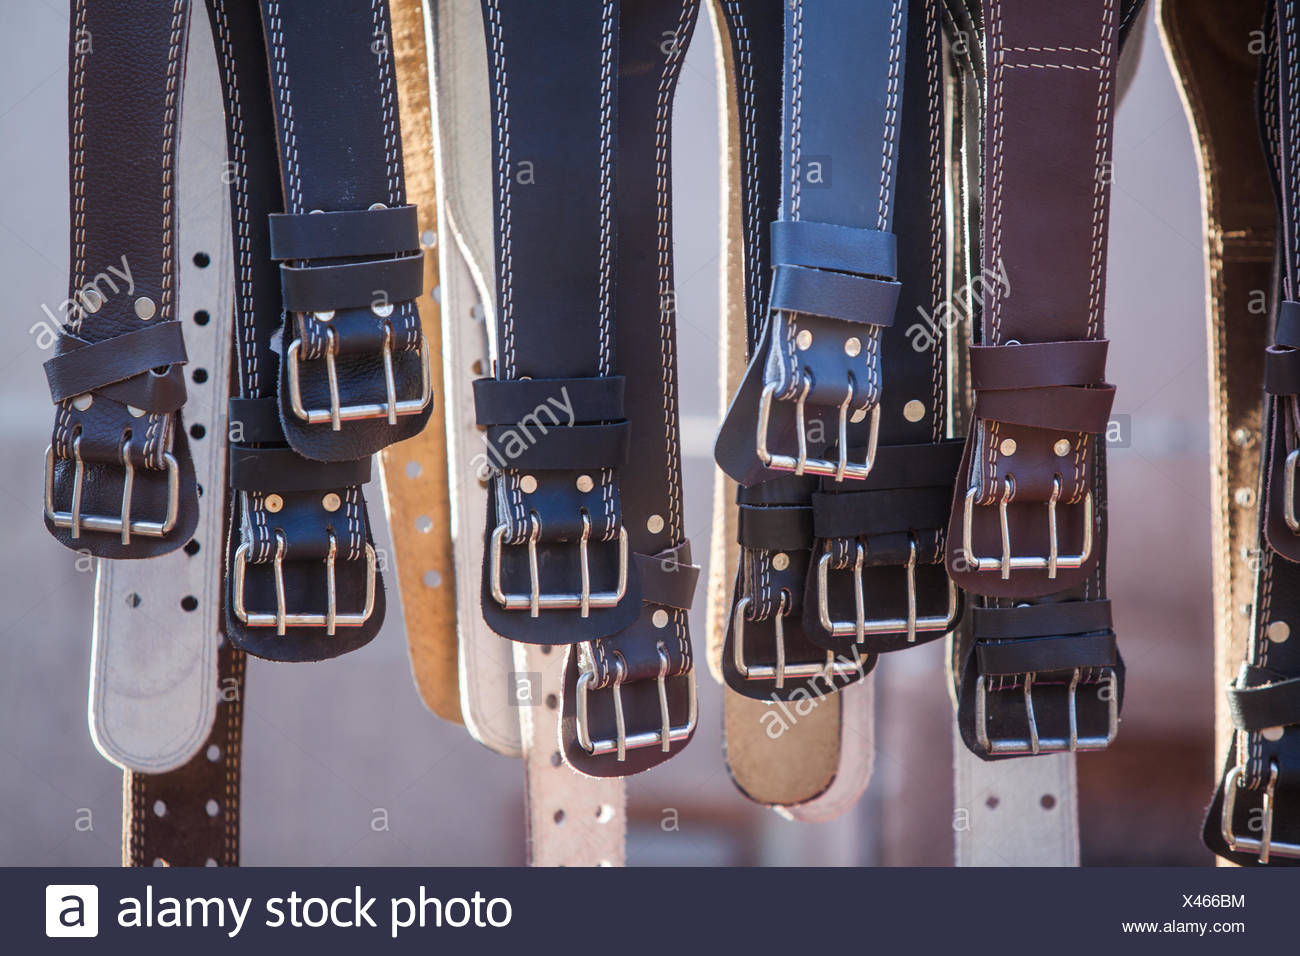 Many leather belts - Stock Image